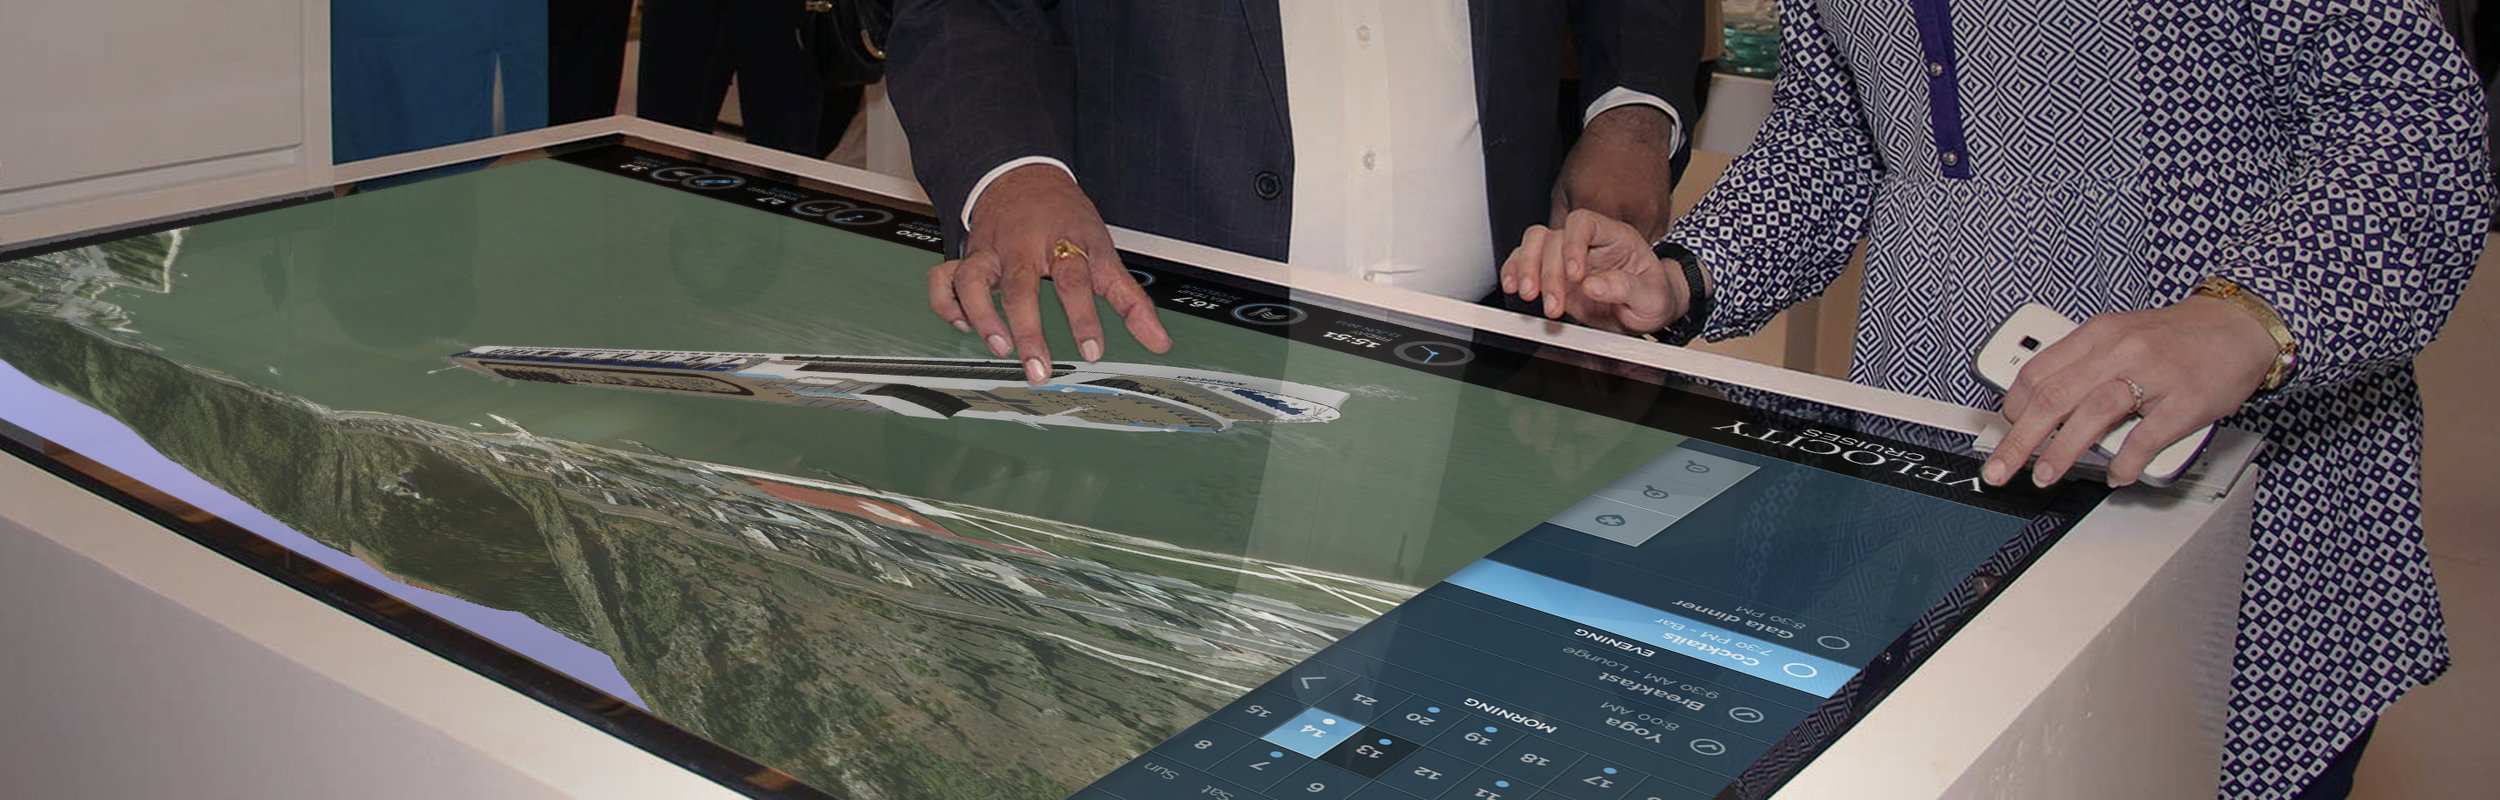 Touchscreen with Cruise information